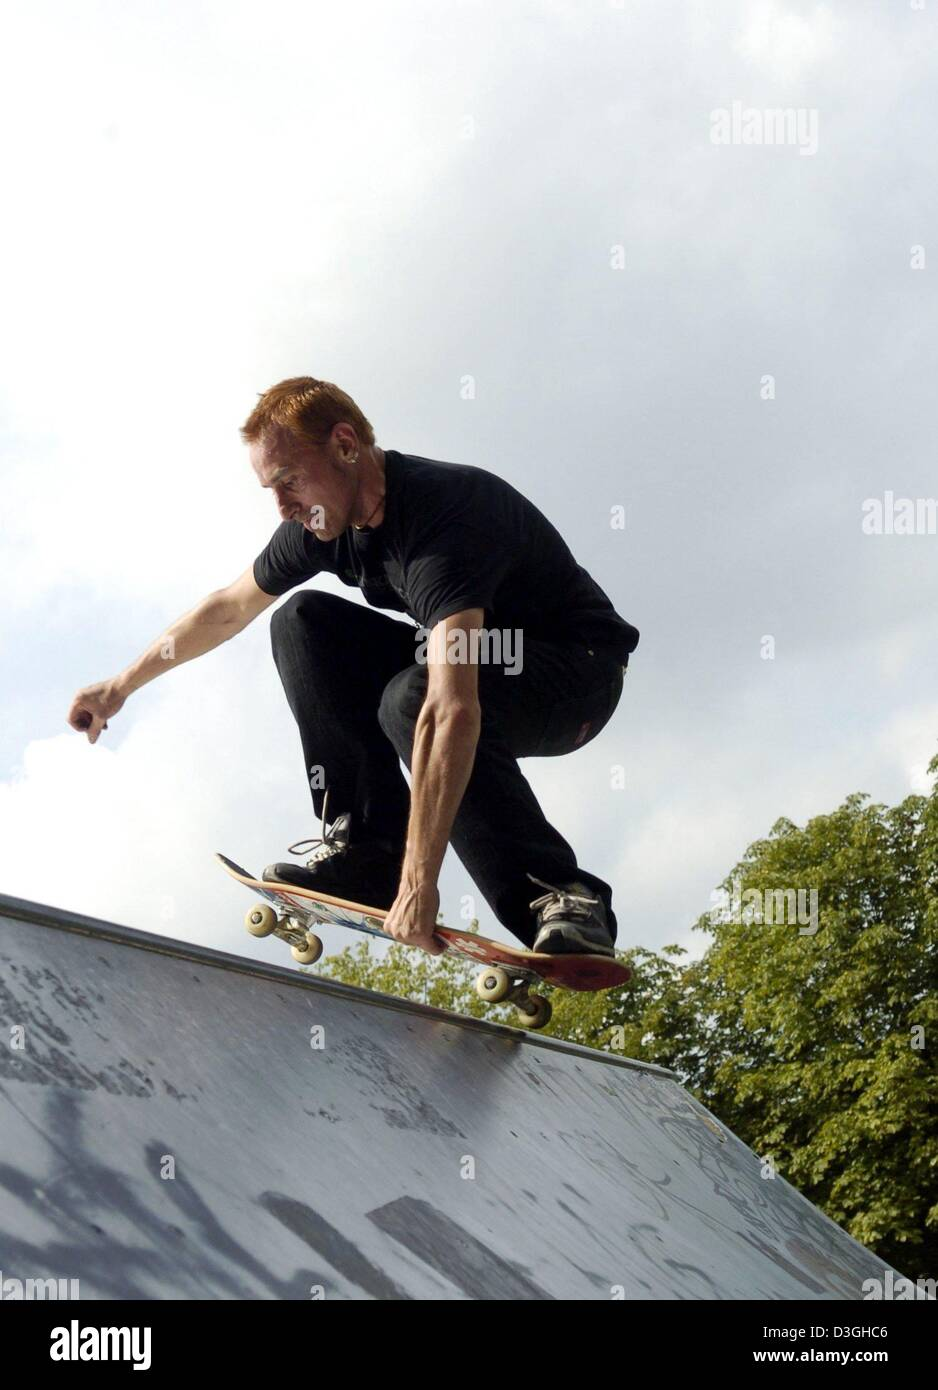 (dpa)   A Scater In Action On A Half Pipe In Berlin, 17